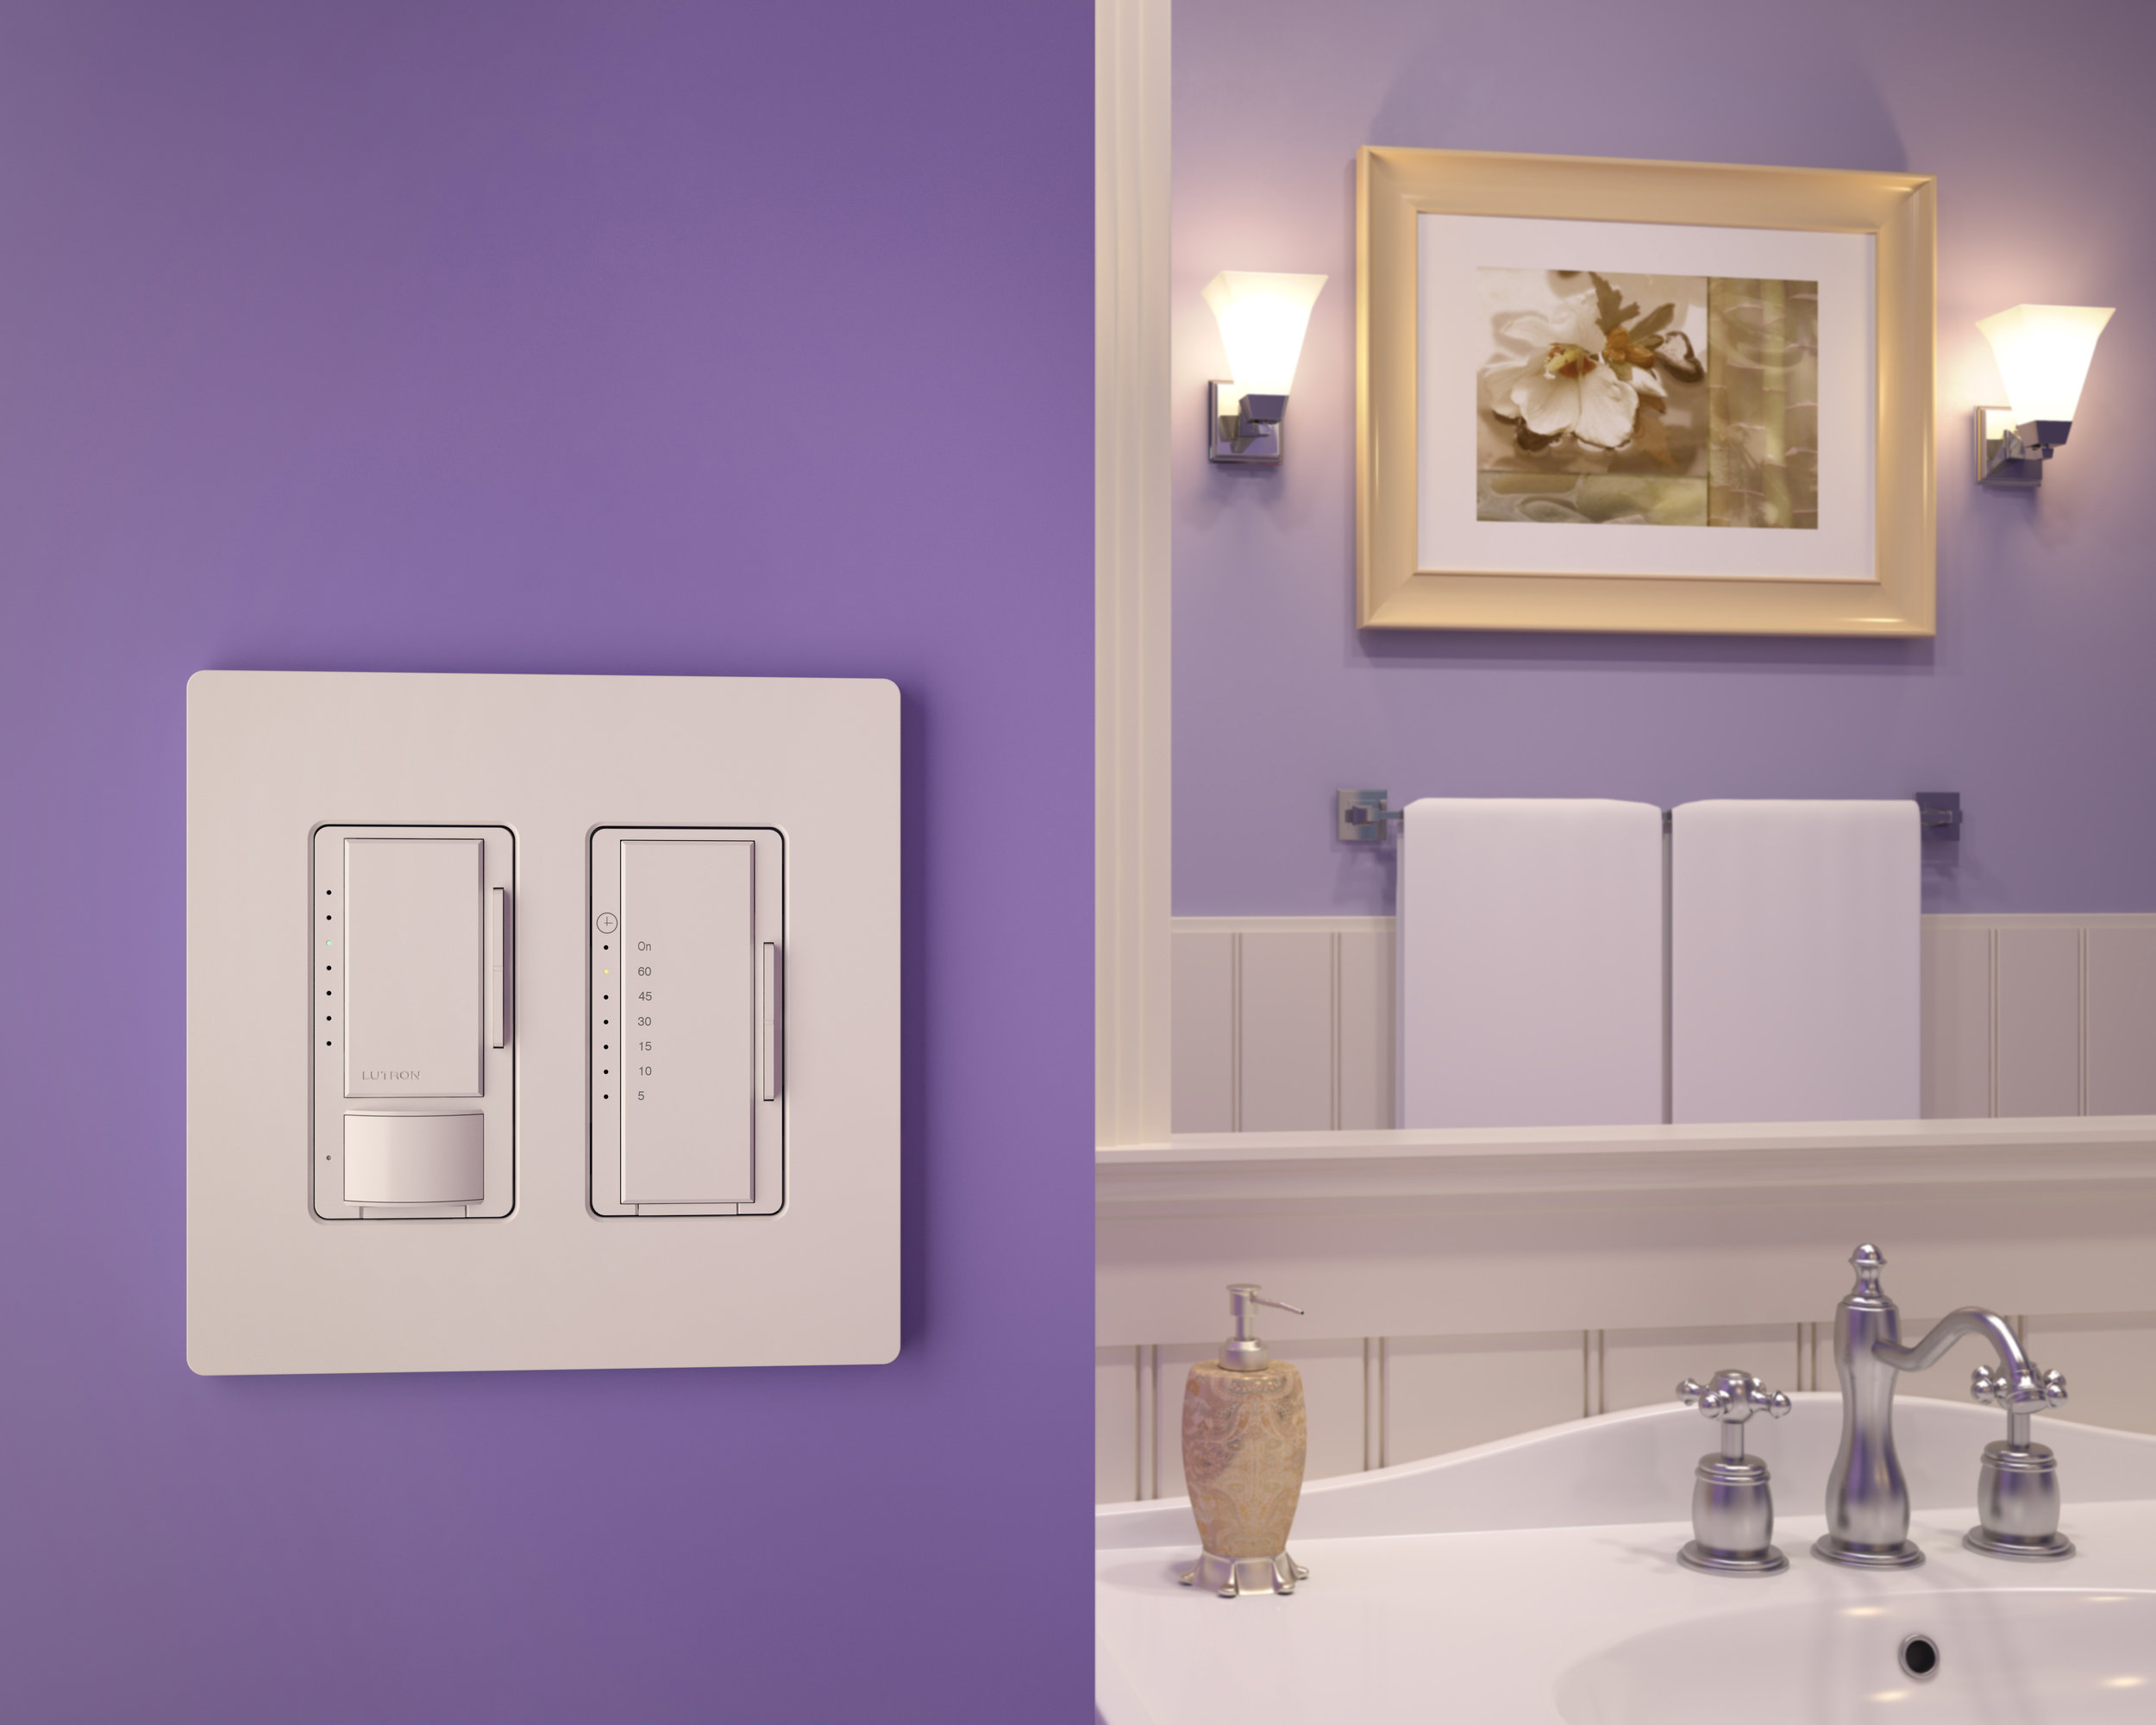 Lutron_light_sensor_bathroom_switch.jpg